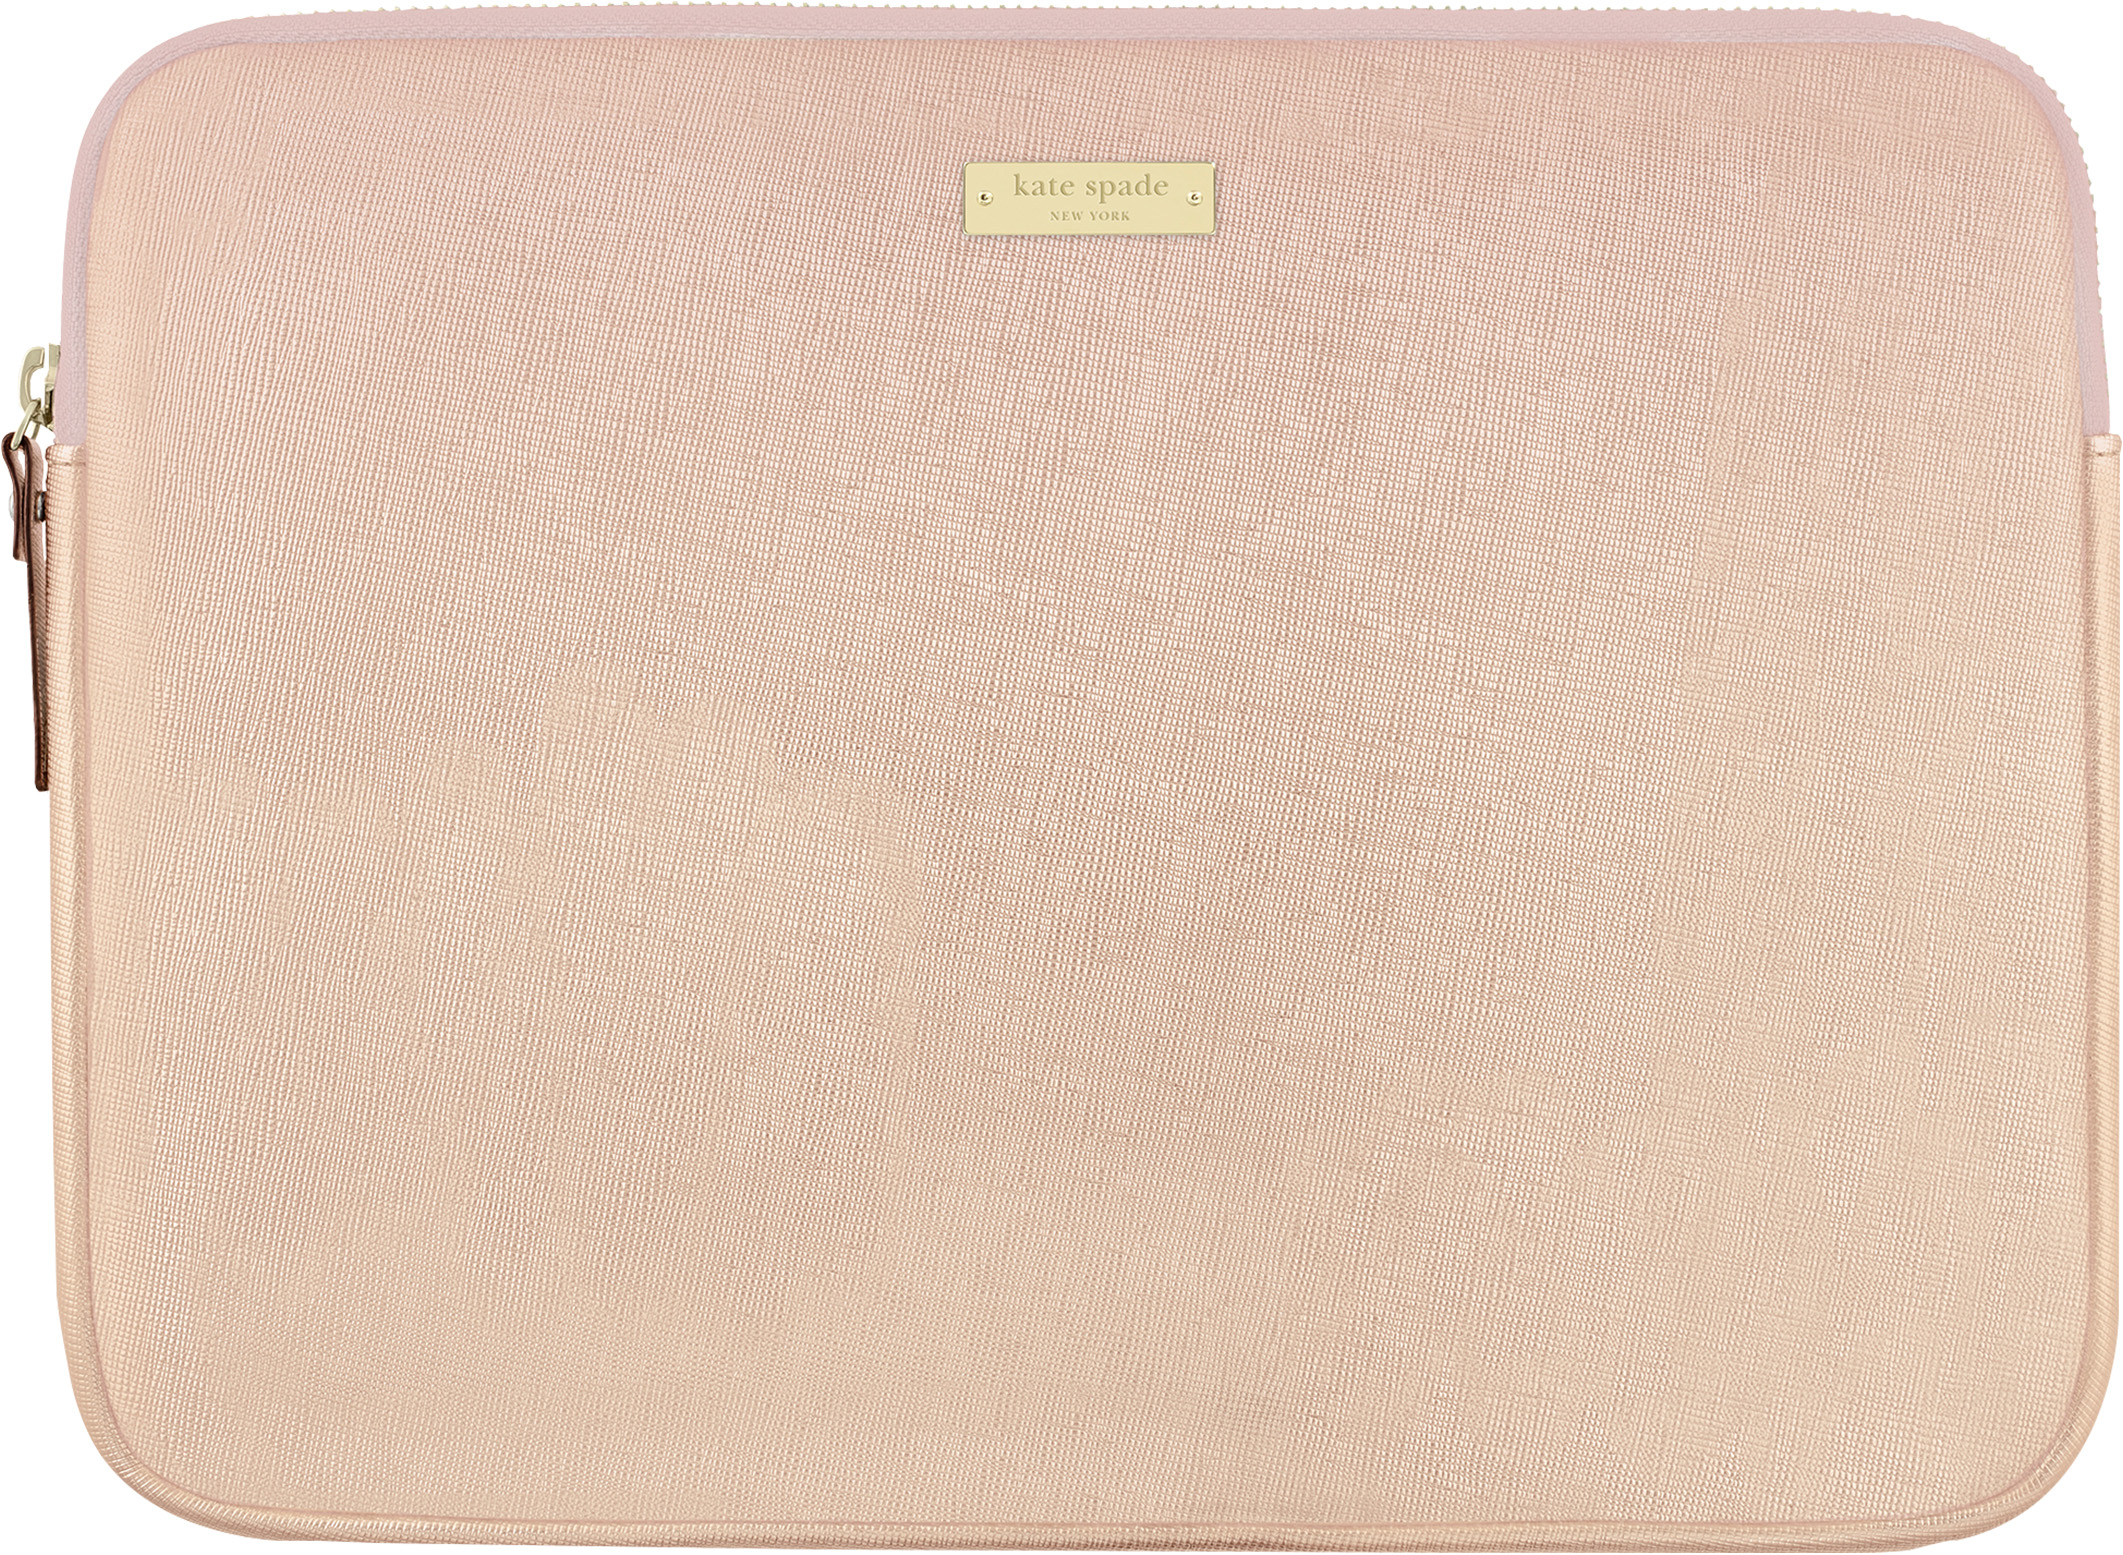 Kate Spade Saffiano Sleeve for Surface Pro (Rose Gold Metallic)